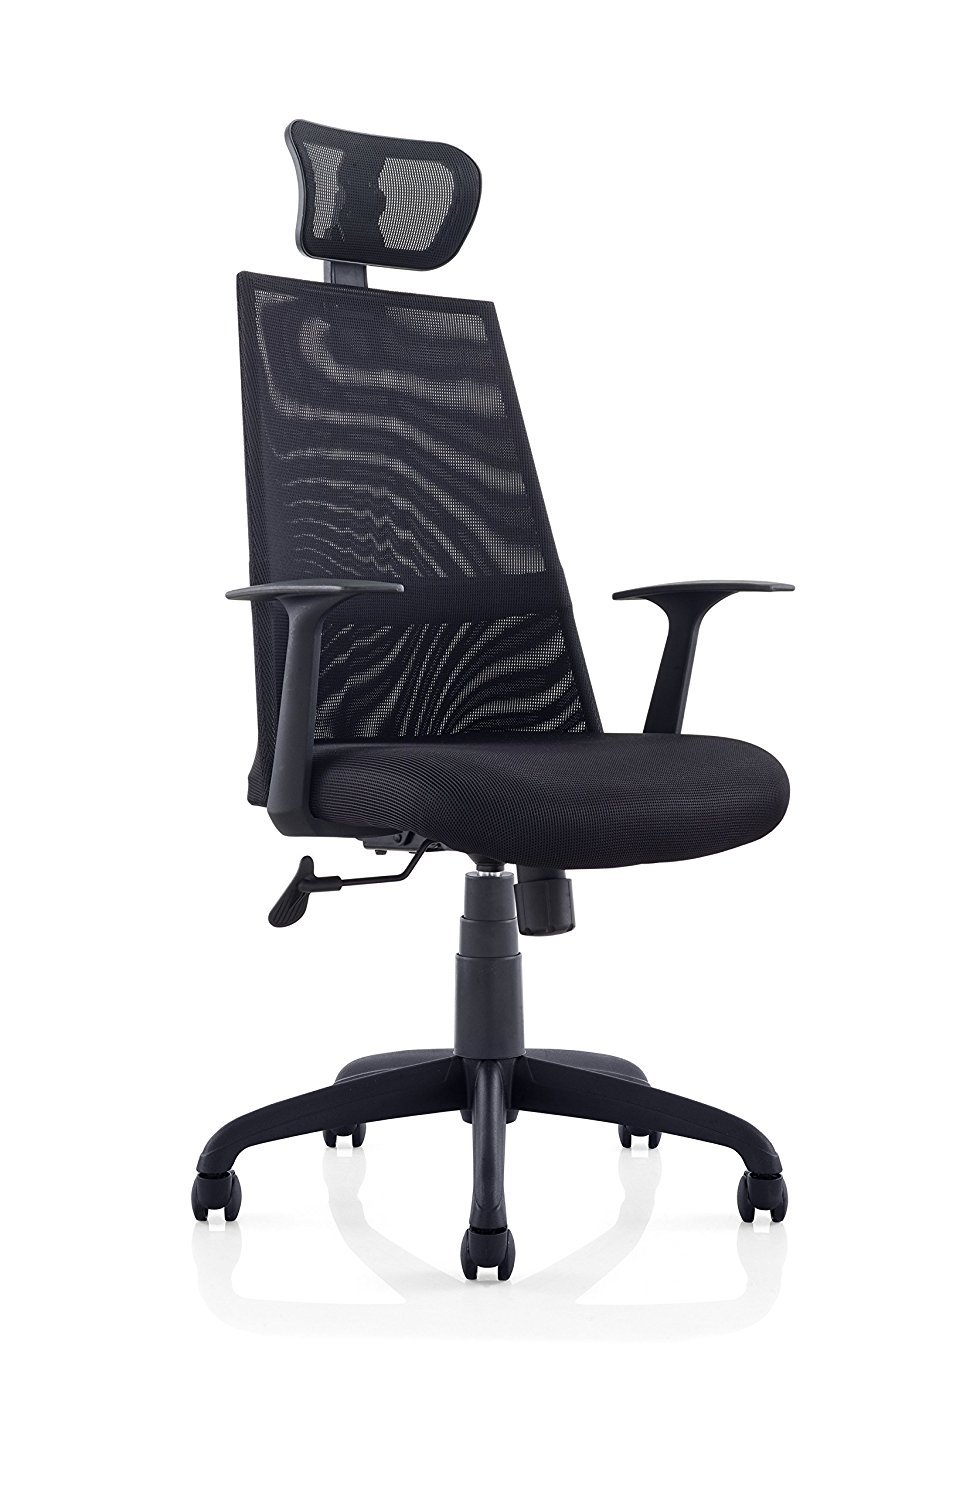 Ergomax Meshed Ergo Office Chair with Headrest (Black) Ergomax Office MSH122BK